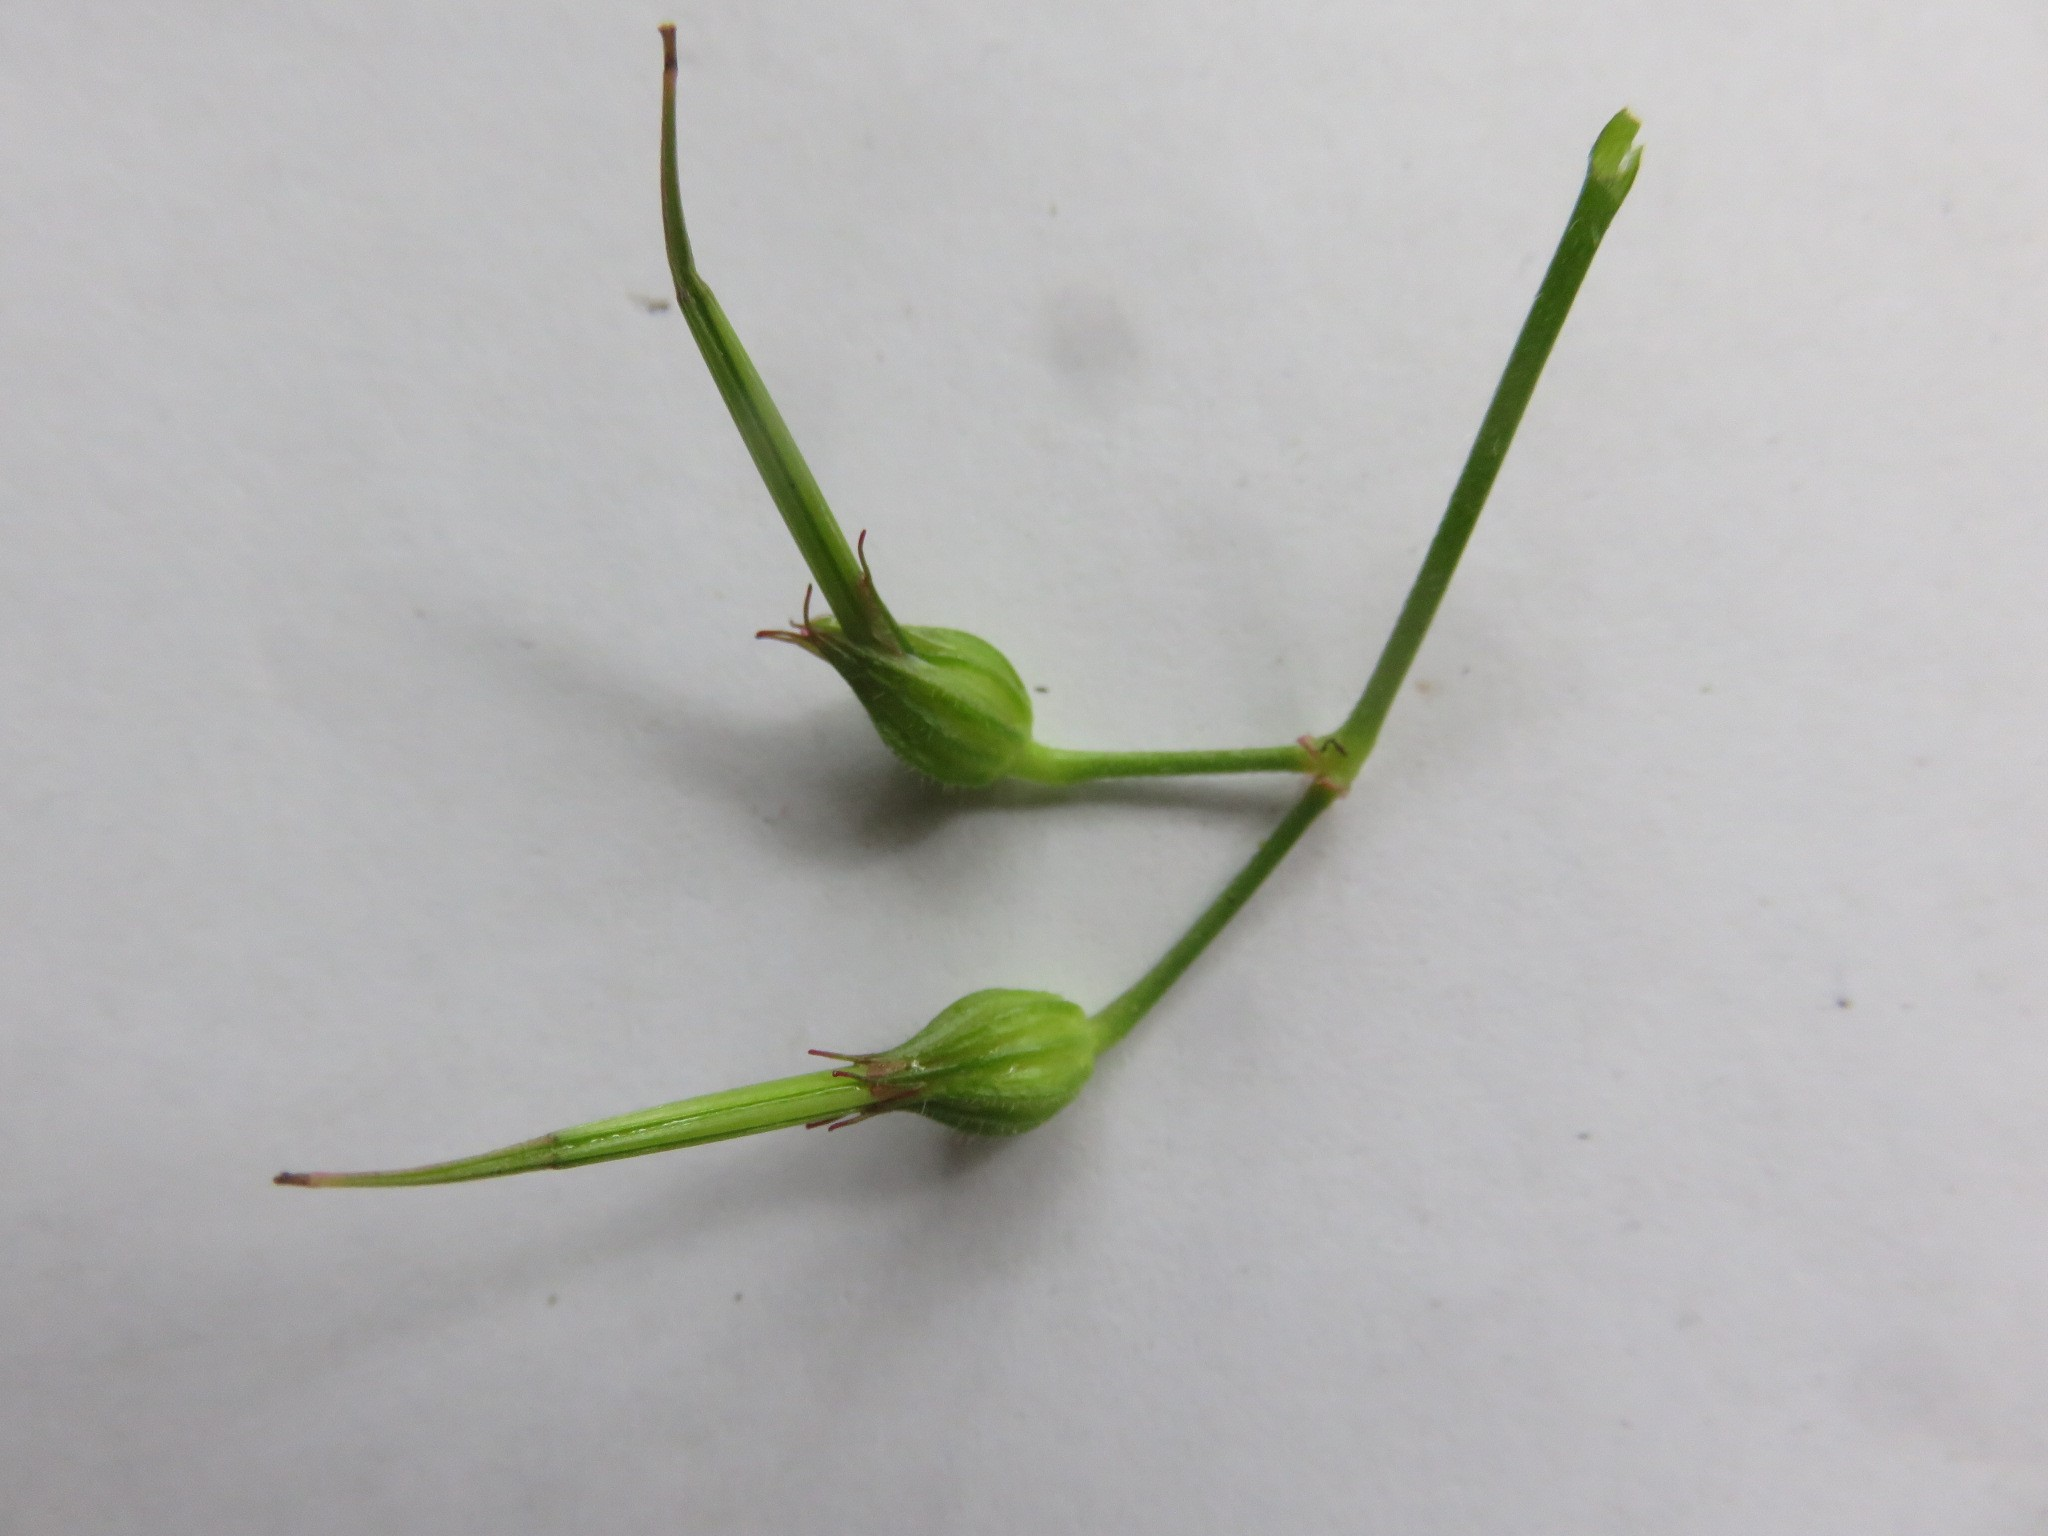 the seeds of many related plants called name crane's bill